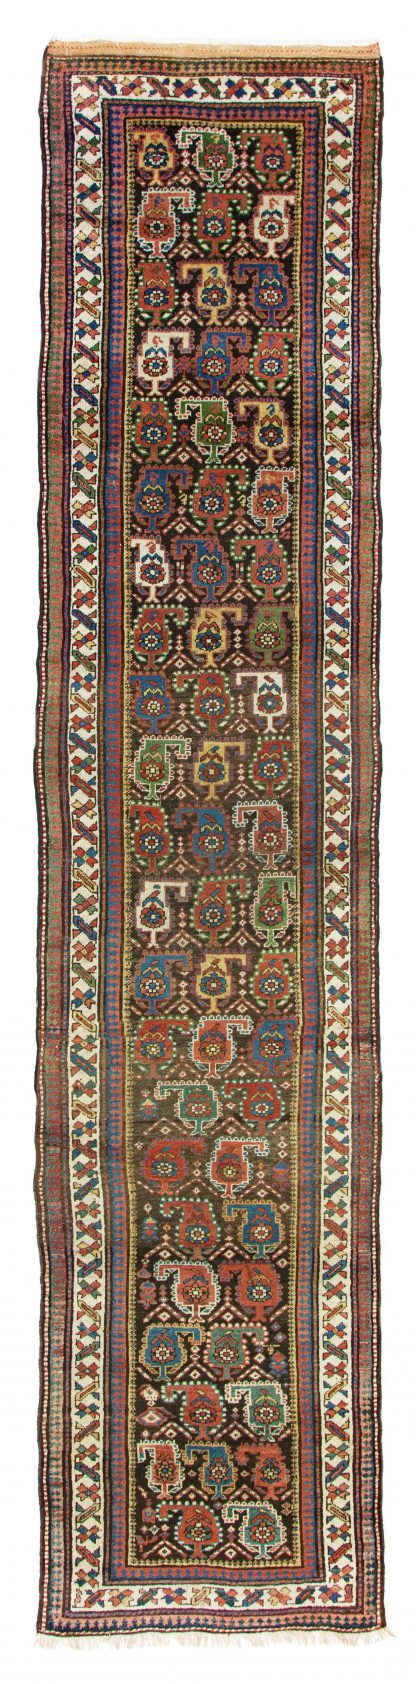 Persian tribal runner